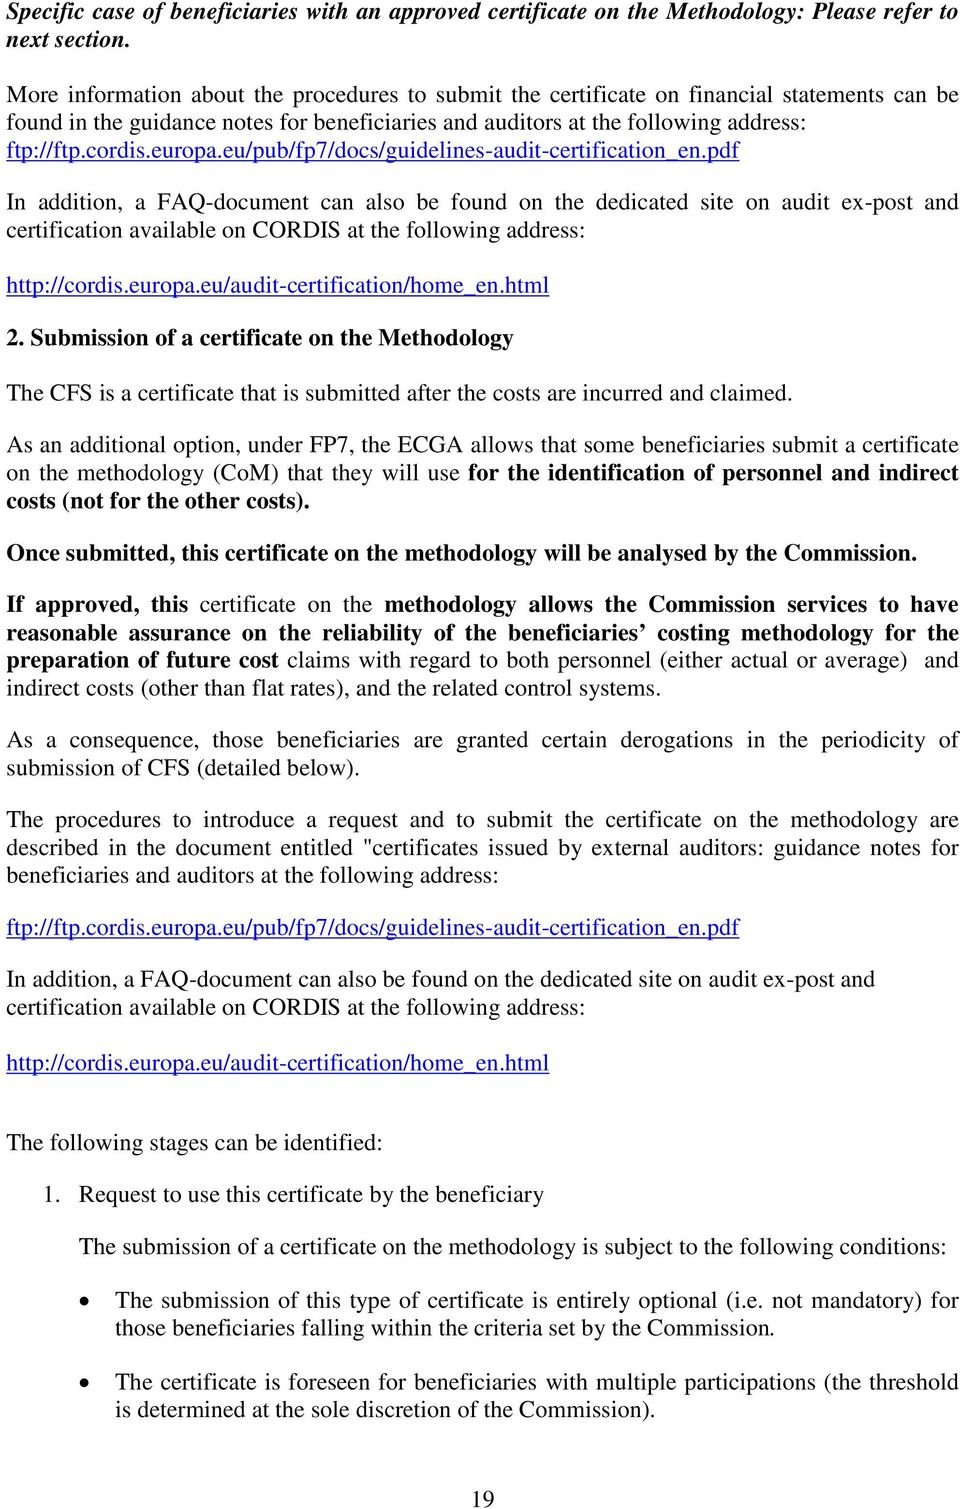 europa.eu/pub/fp7/docs/guidelines-audit-certification_en.